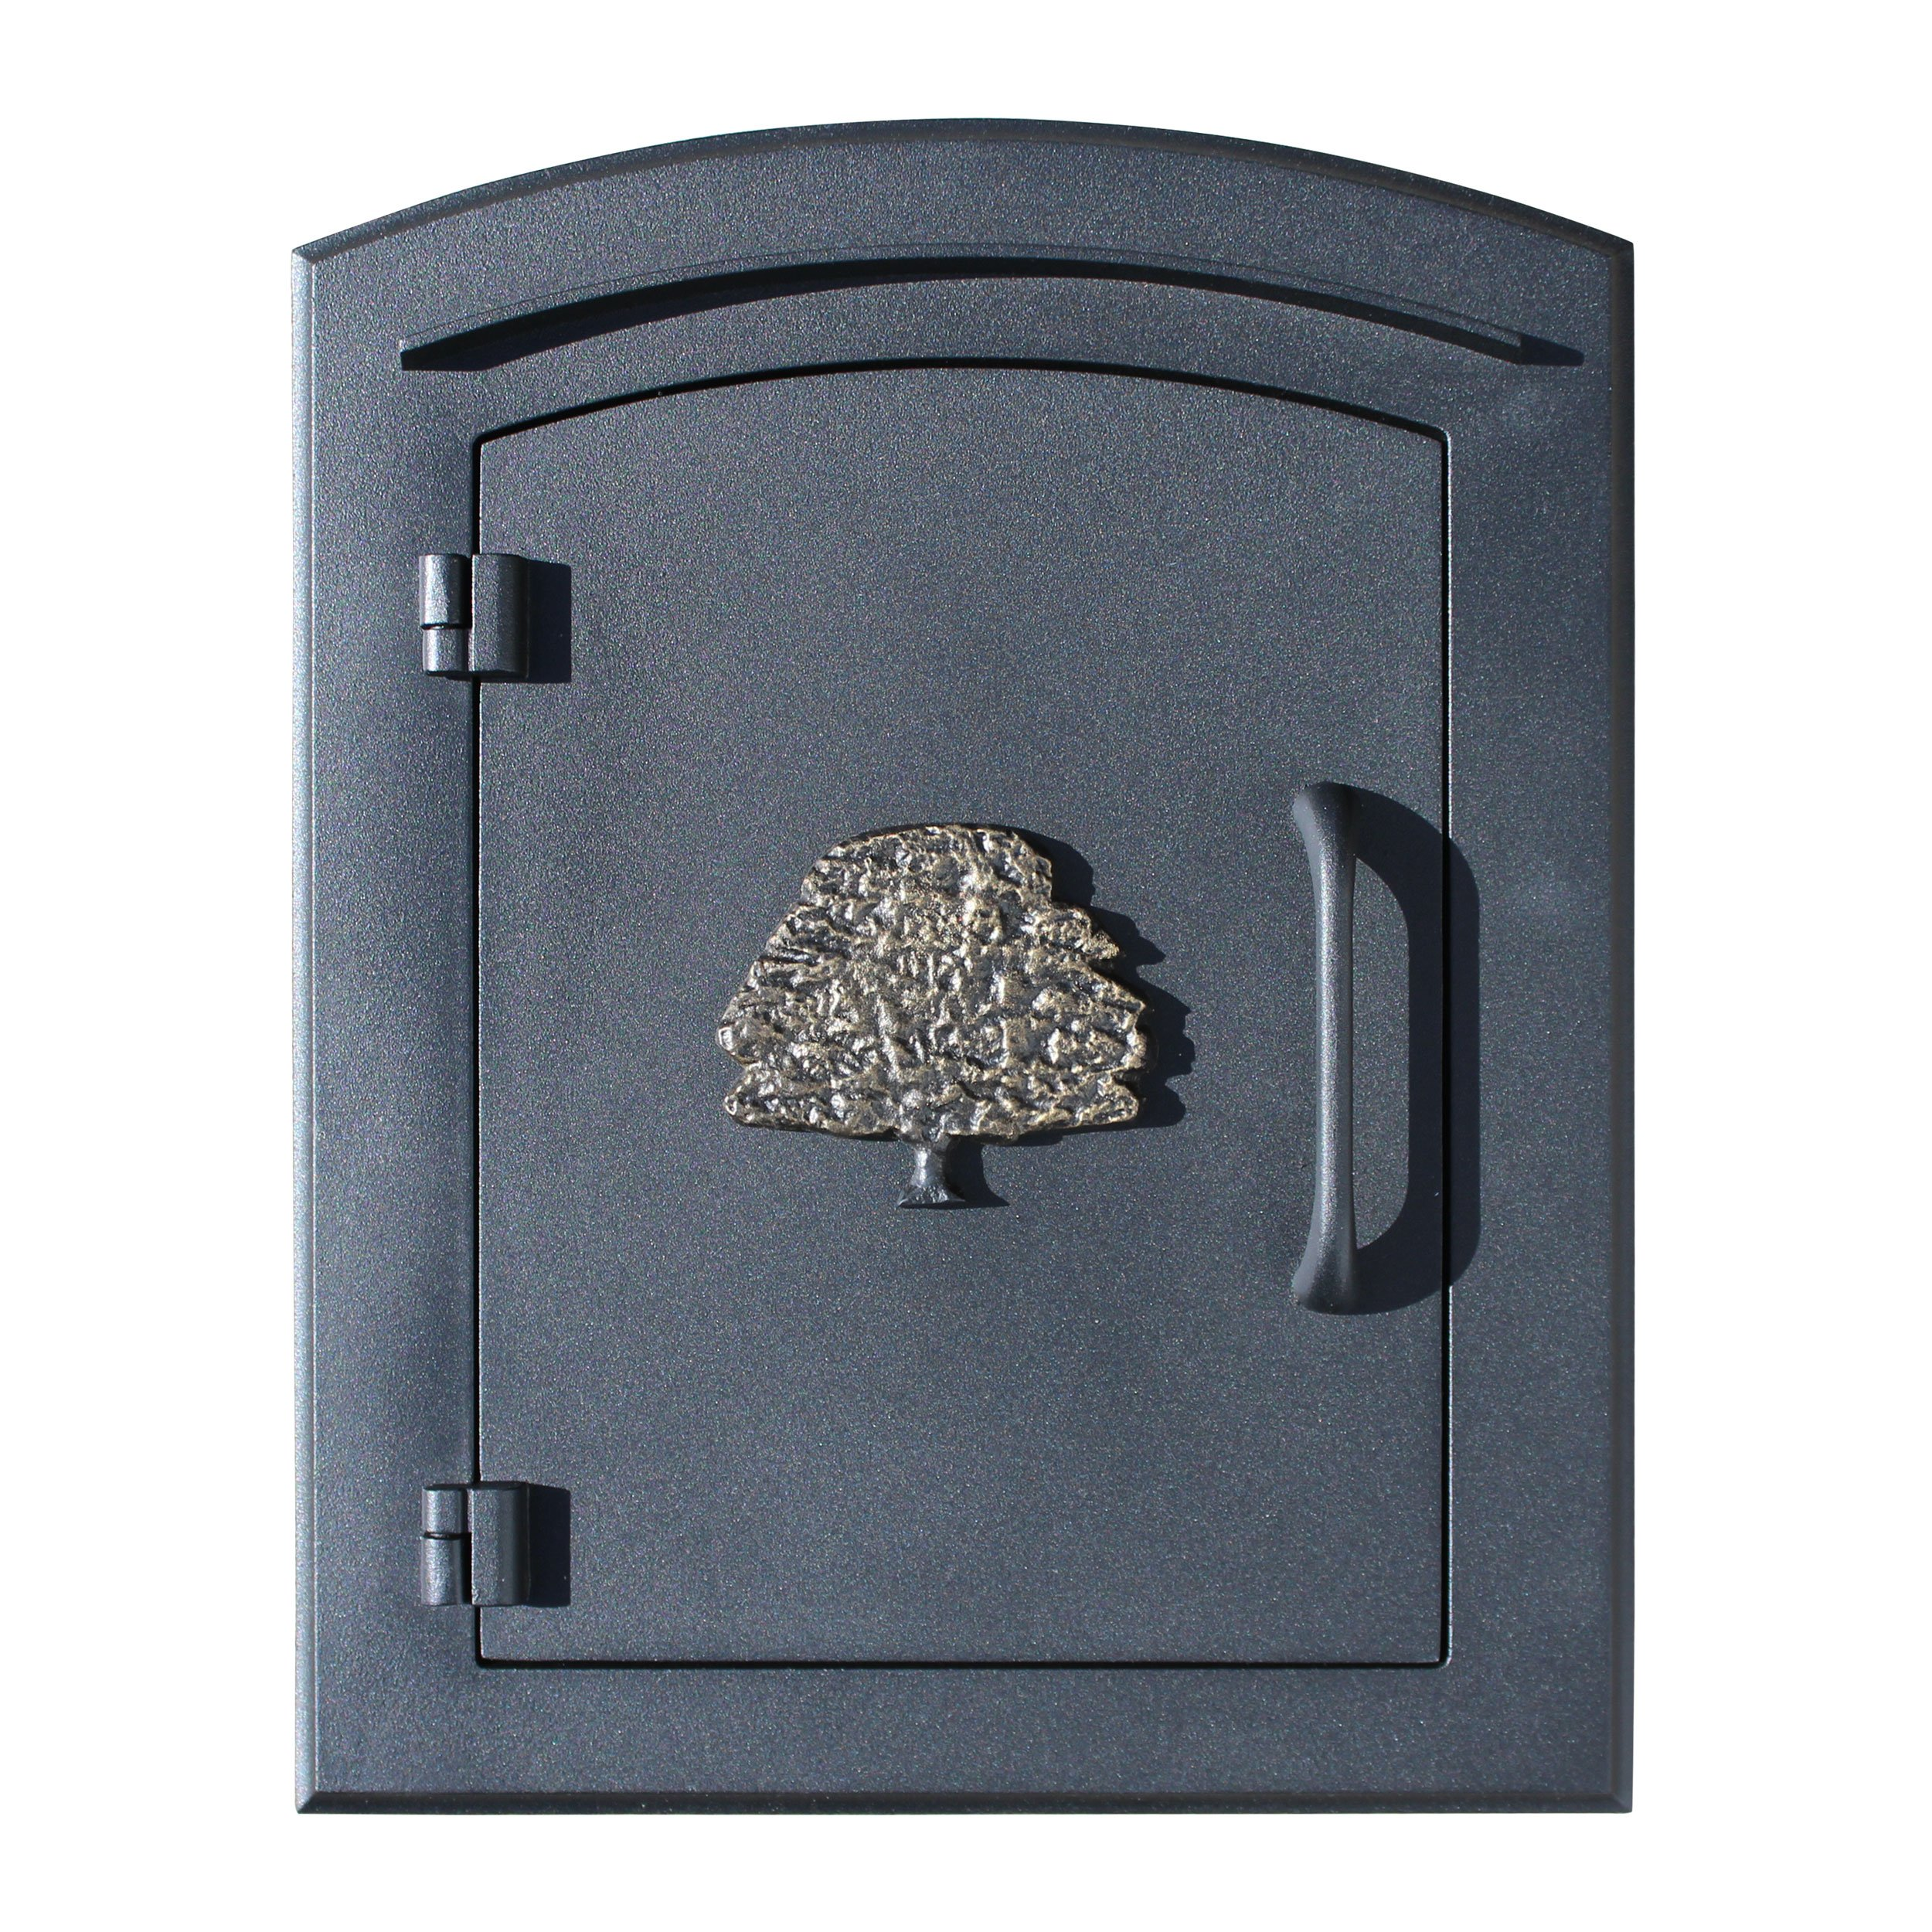 Qualarc MAN-S-1404-BL Manchester Security Drop Chute Mailbox with''Decorative Oak Tree Logo'' Faceplate in Black